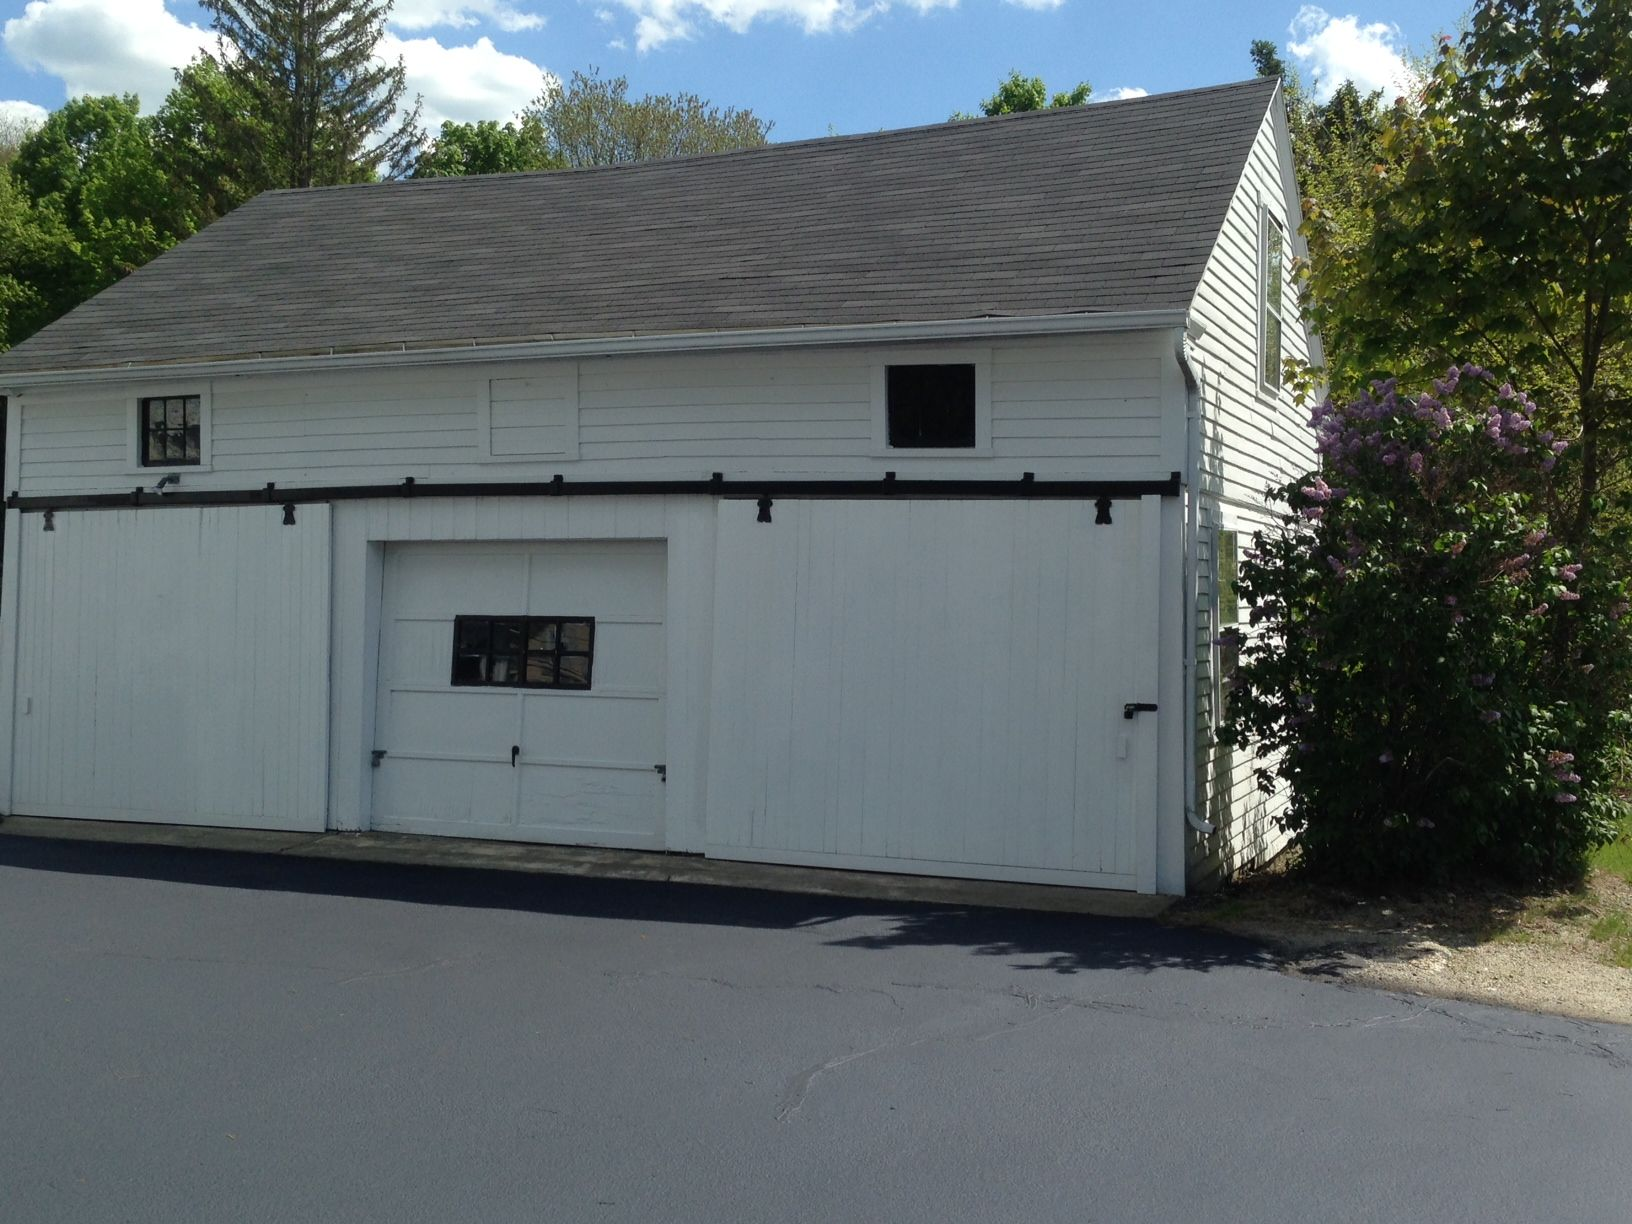 Upton Ma Single Bay Garage Storage Approx 10 Feet Wide And 20 Feet Deep Limited Power 140 Month With Images Garage Storage Upton Rent